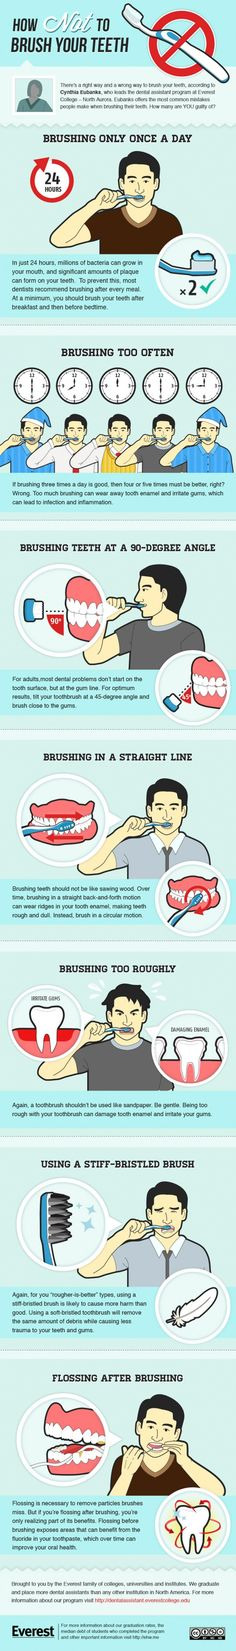 How not to brush your teeth